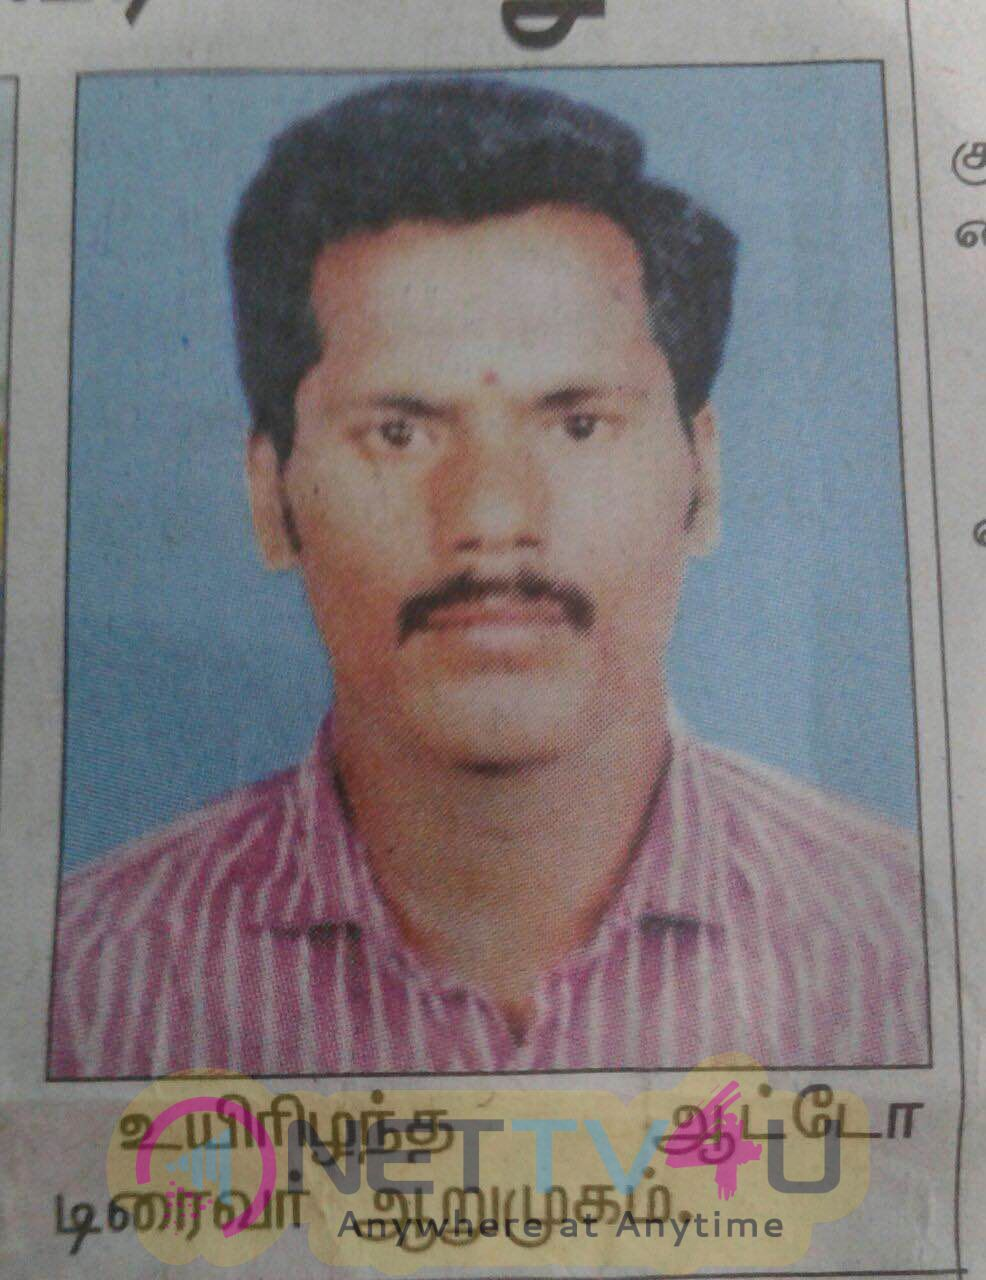 Arumukat Auto Driver Died In The Crash Of The Daughter'S Education Expenditure. South Indian Artistes Association General Secretary And Actor Vishal.